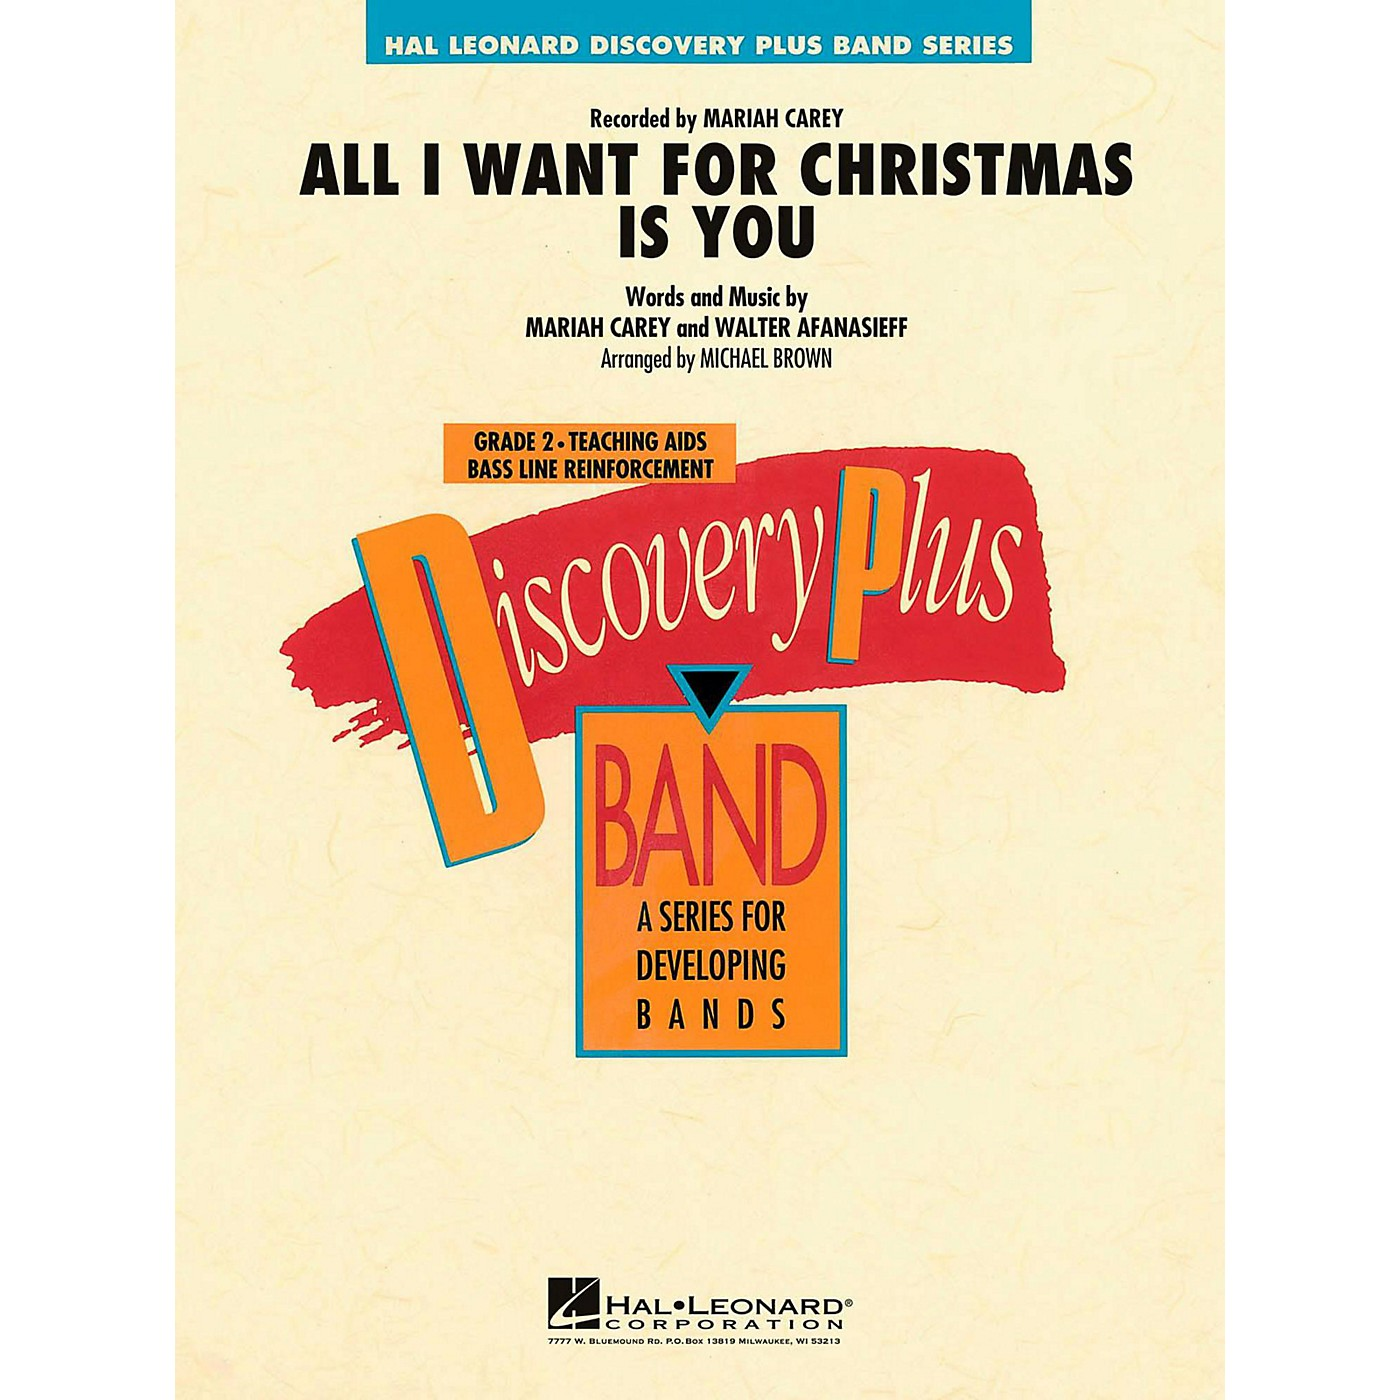 Hal Leonard All I Want For Christmas Is You Concert Band Level 2 thumbnail